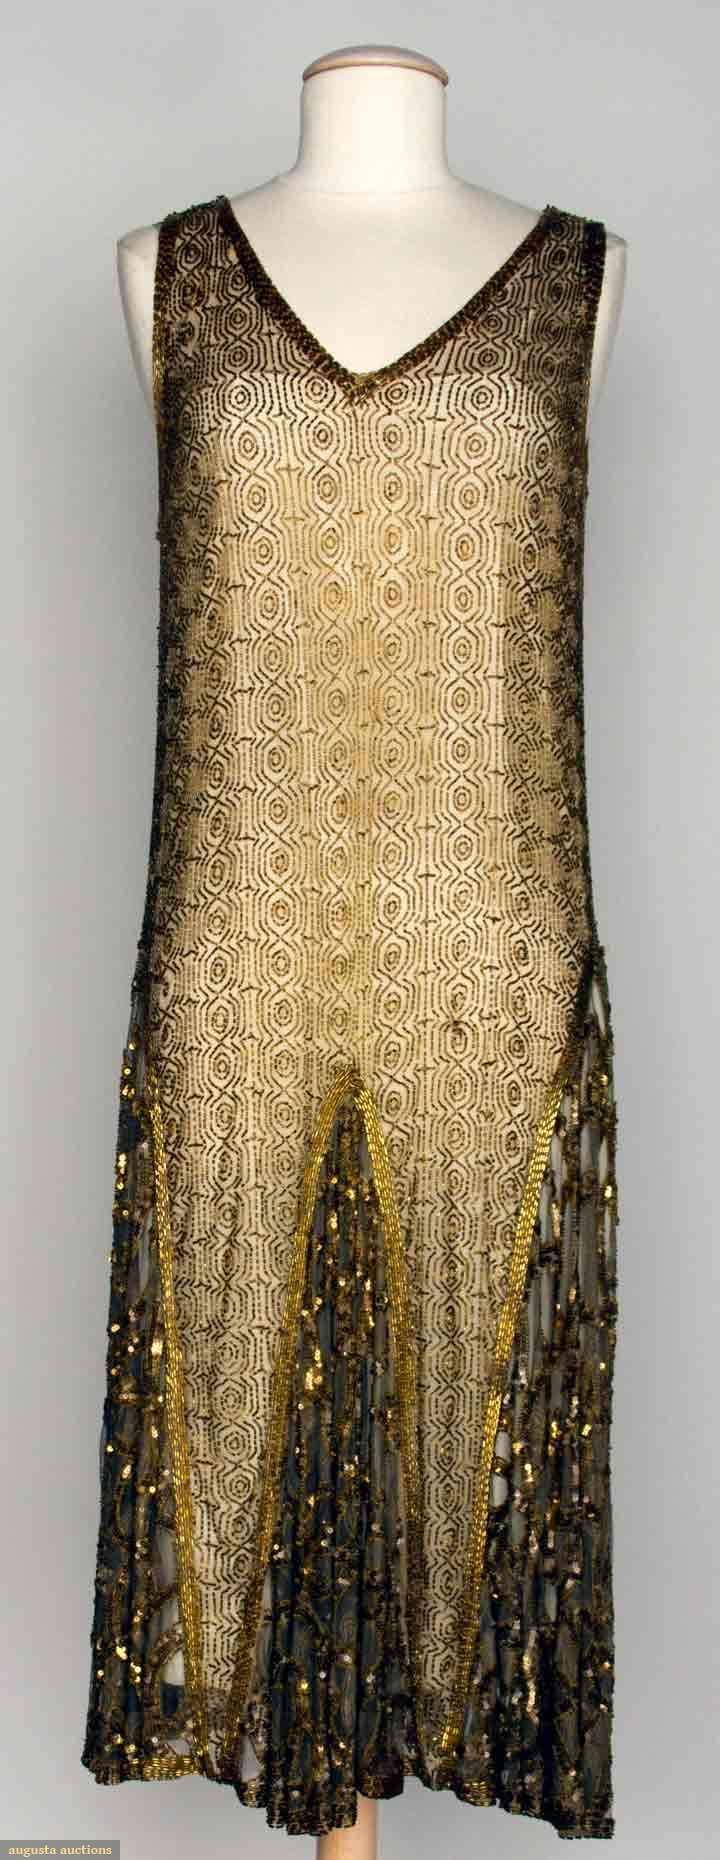 "Beaded Dance Dress, 1920s, Augusta Auctions -- Beige net w/ allover geometric pattern in gold beads, gold sequin trim, B 34"", H 38"", L 45"""